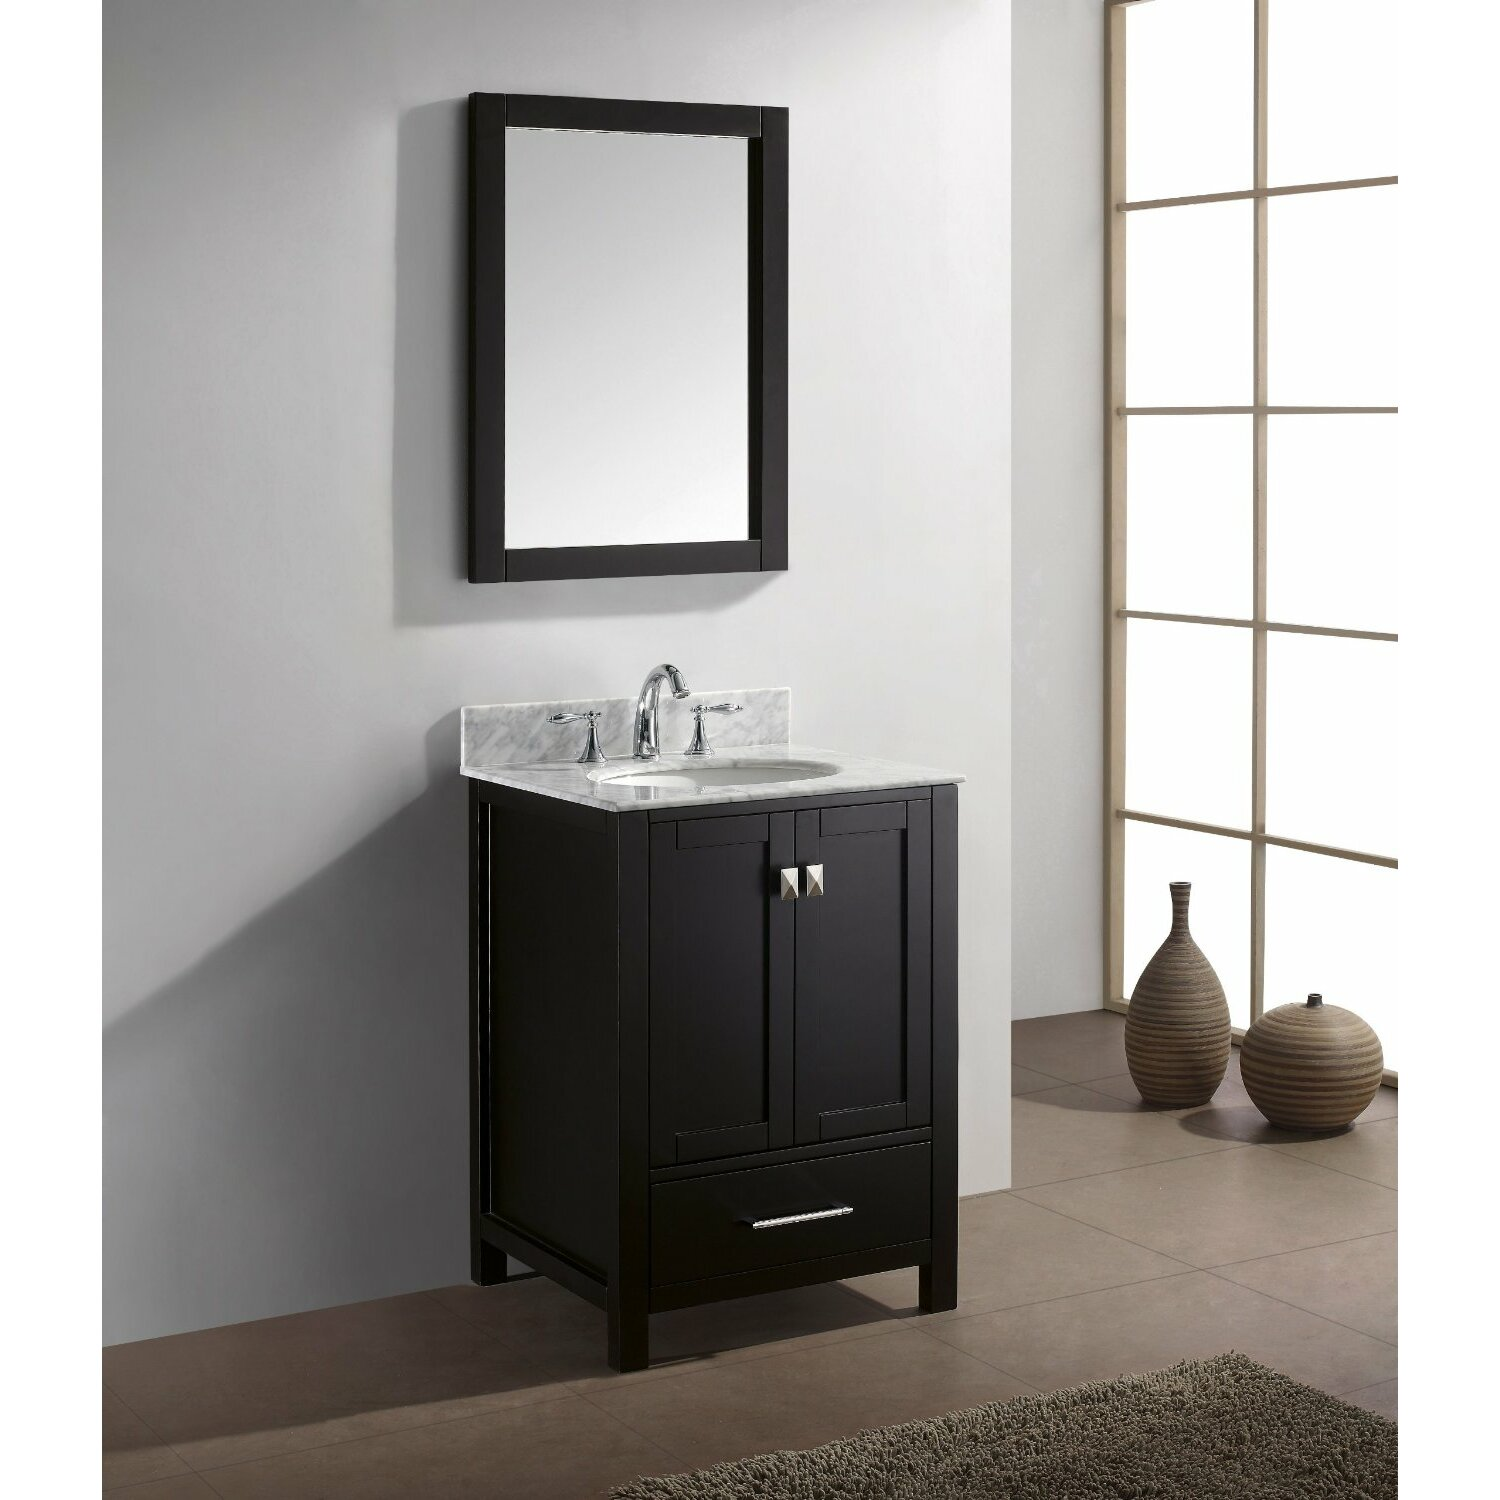 Bathroom Single Vanity Eviva Aberdeen 24 Single Bathroom Vanity Set Reviews Wayfair